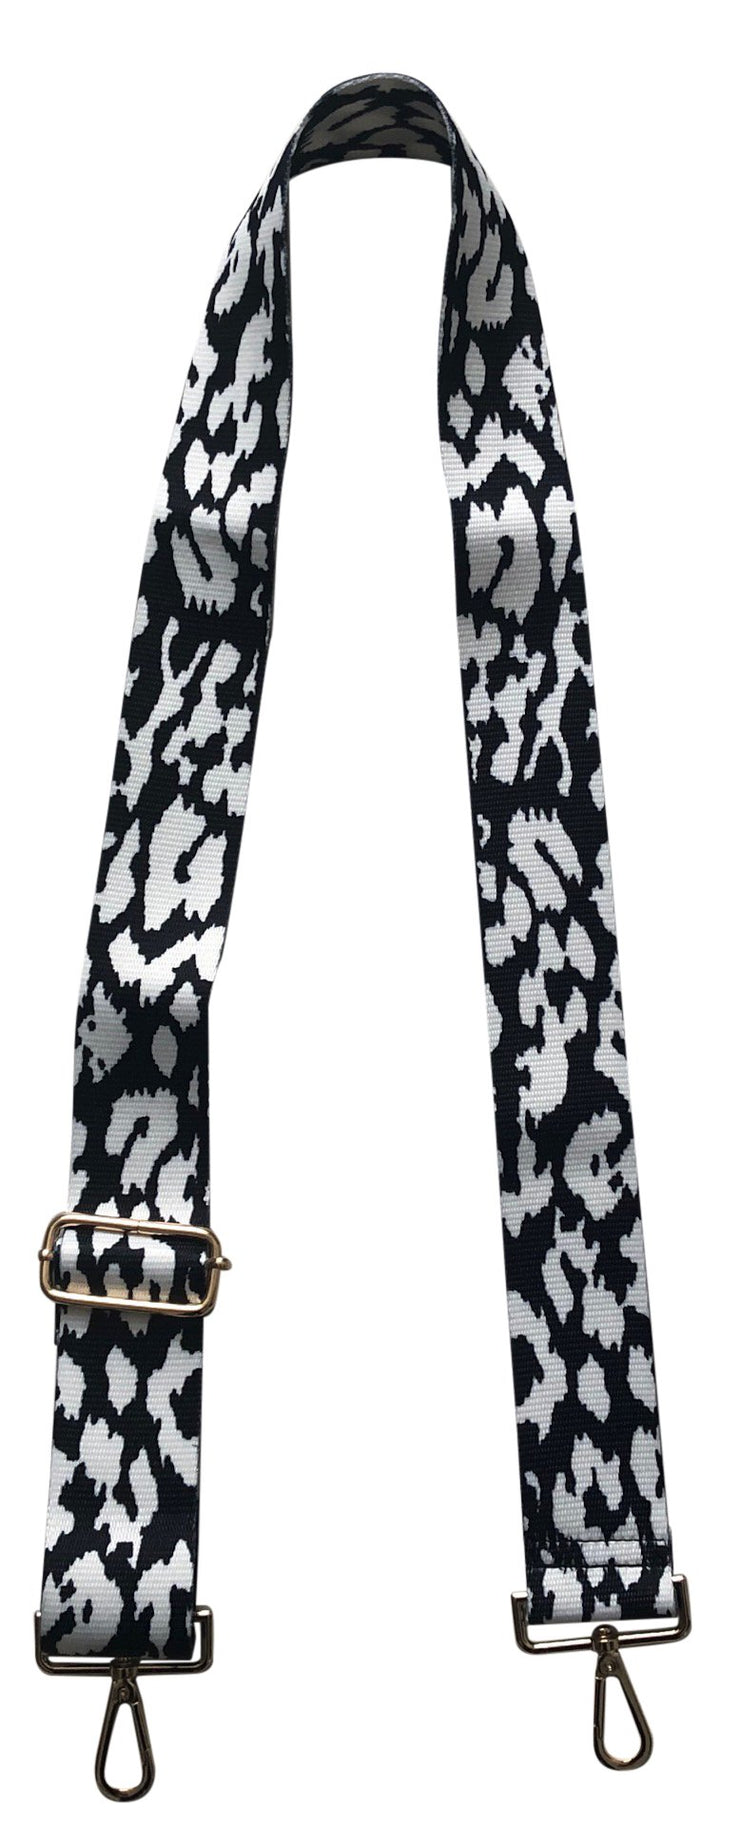 Ahdorned - Adjustable Bag Strap - Black/White Leopard